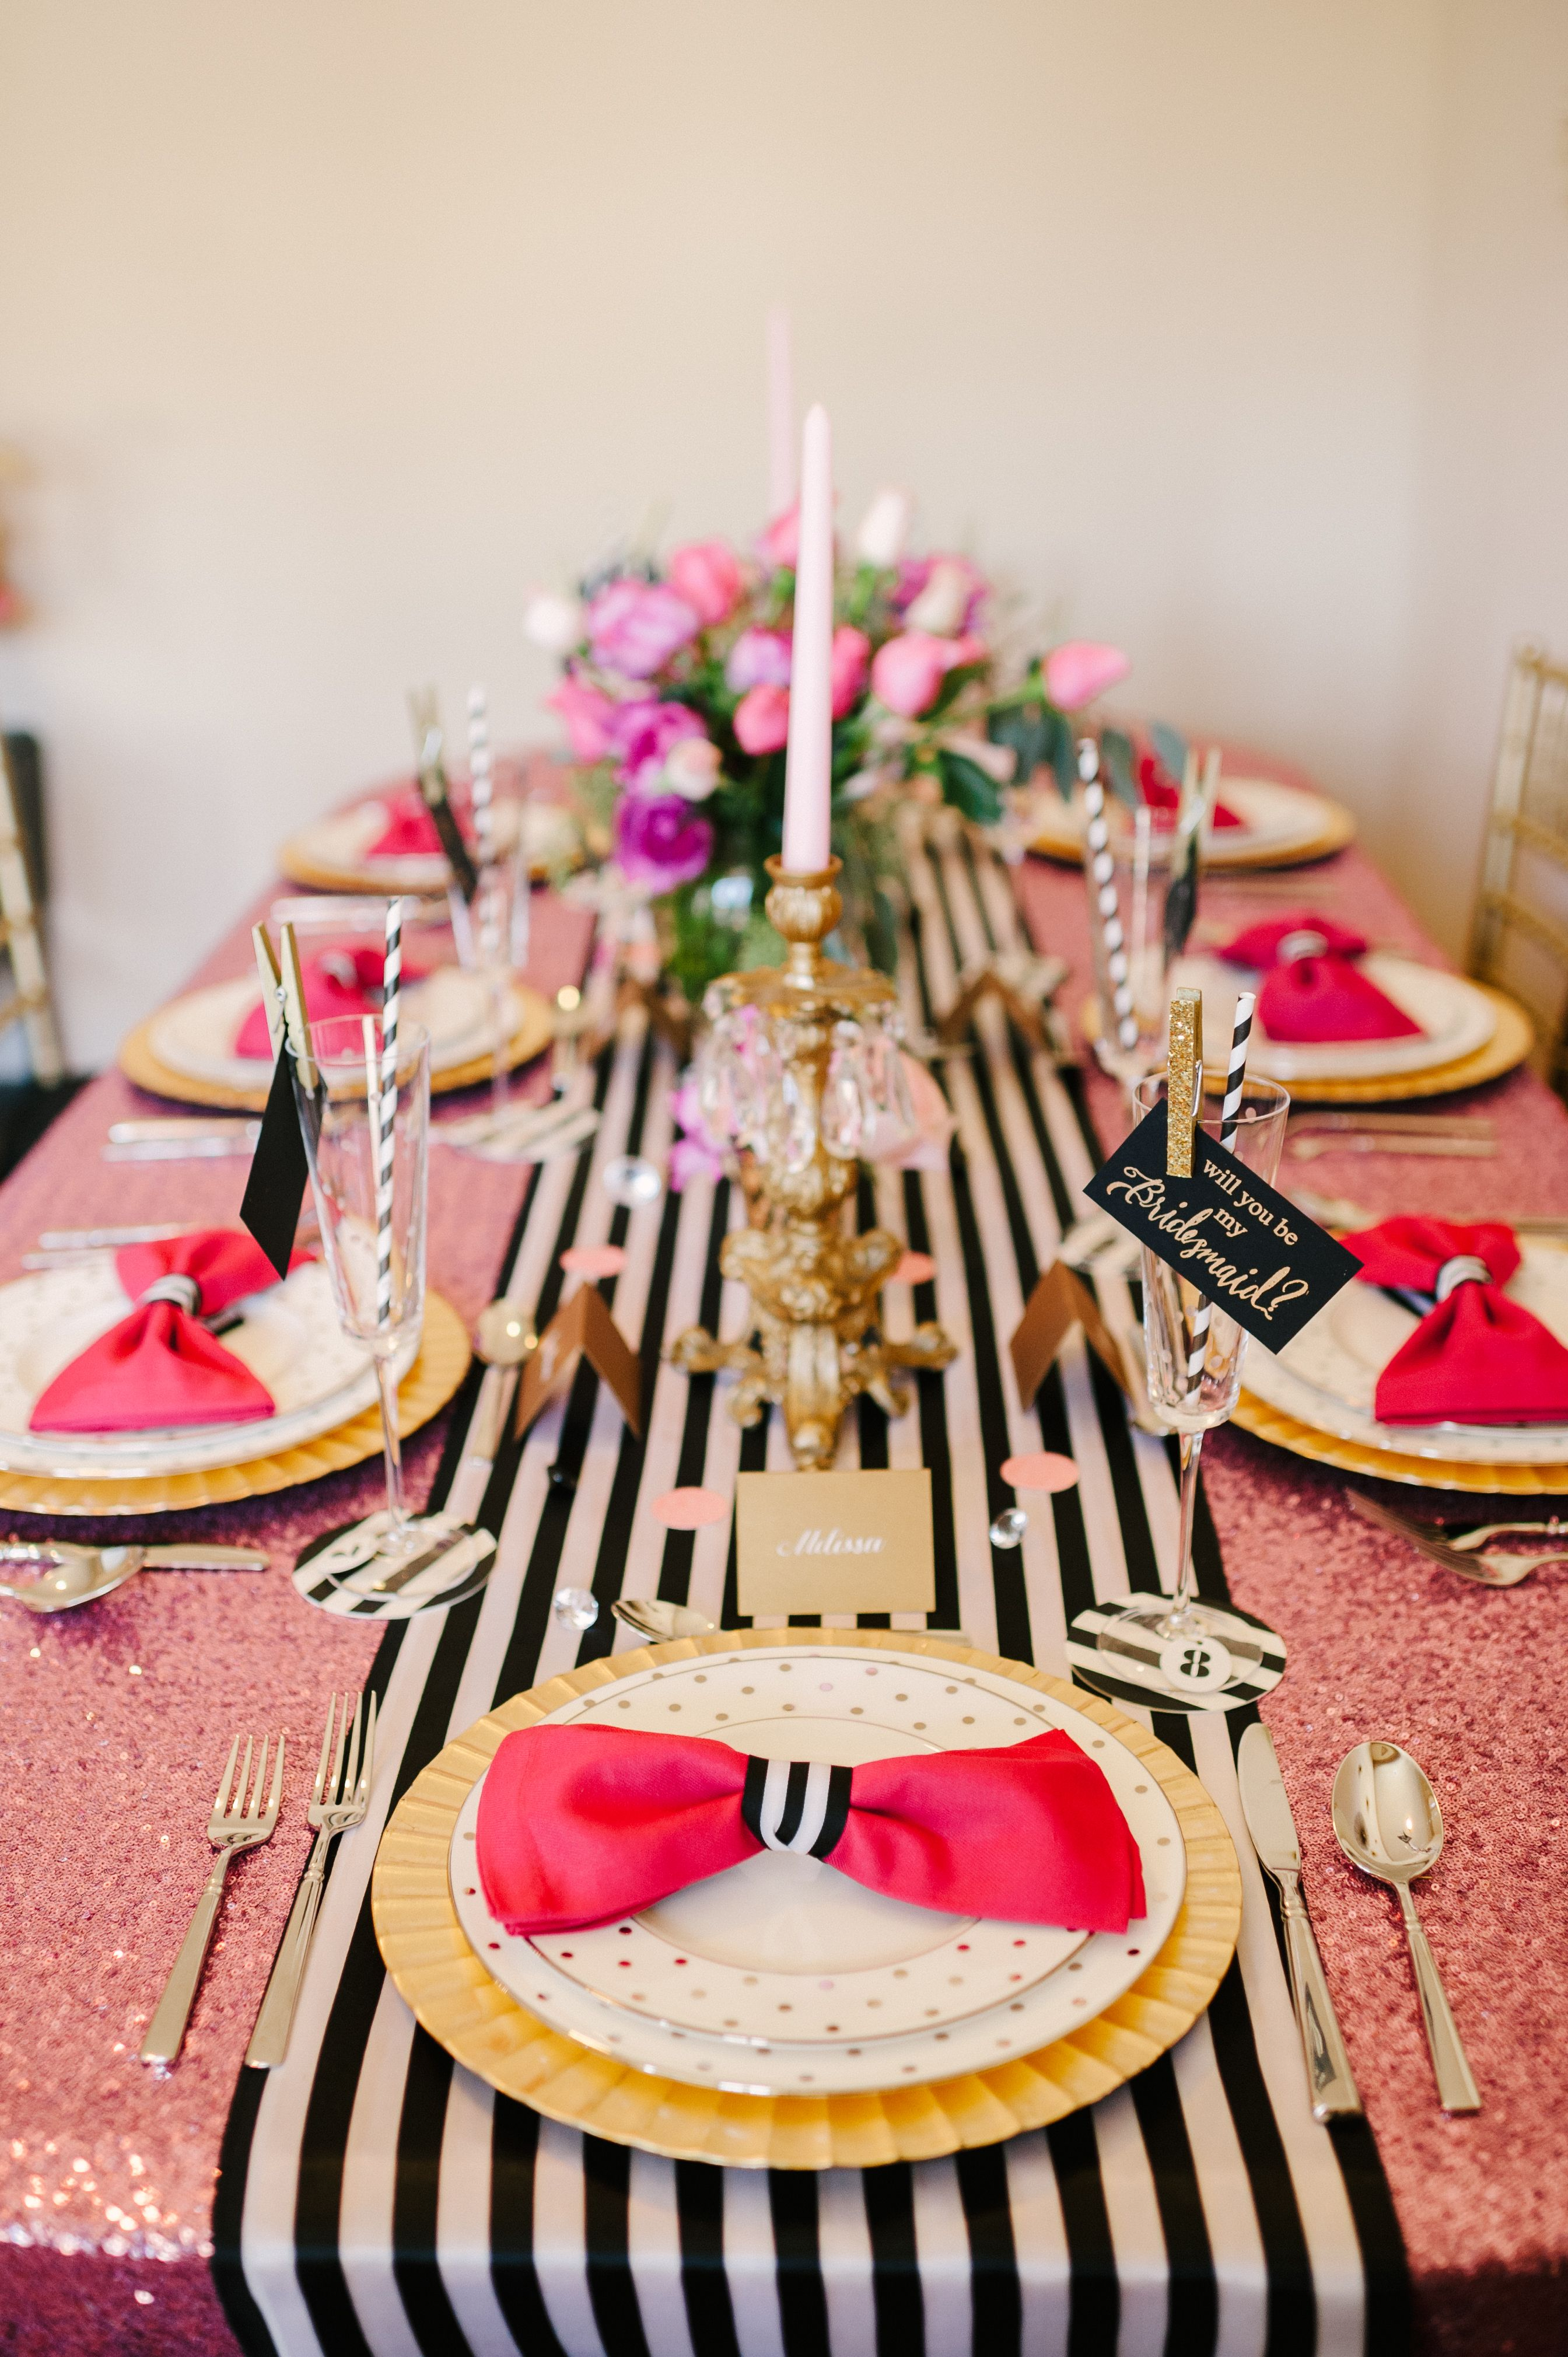 Valentines Dinner Party Ideas Part - 50: A Chic And Swanky Kate Spade Inspired Dinner Party